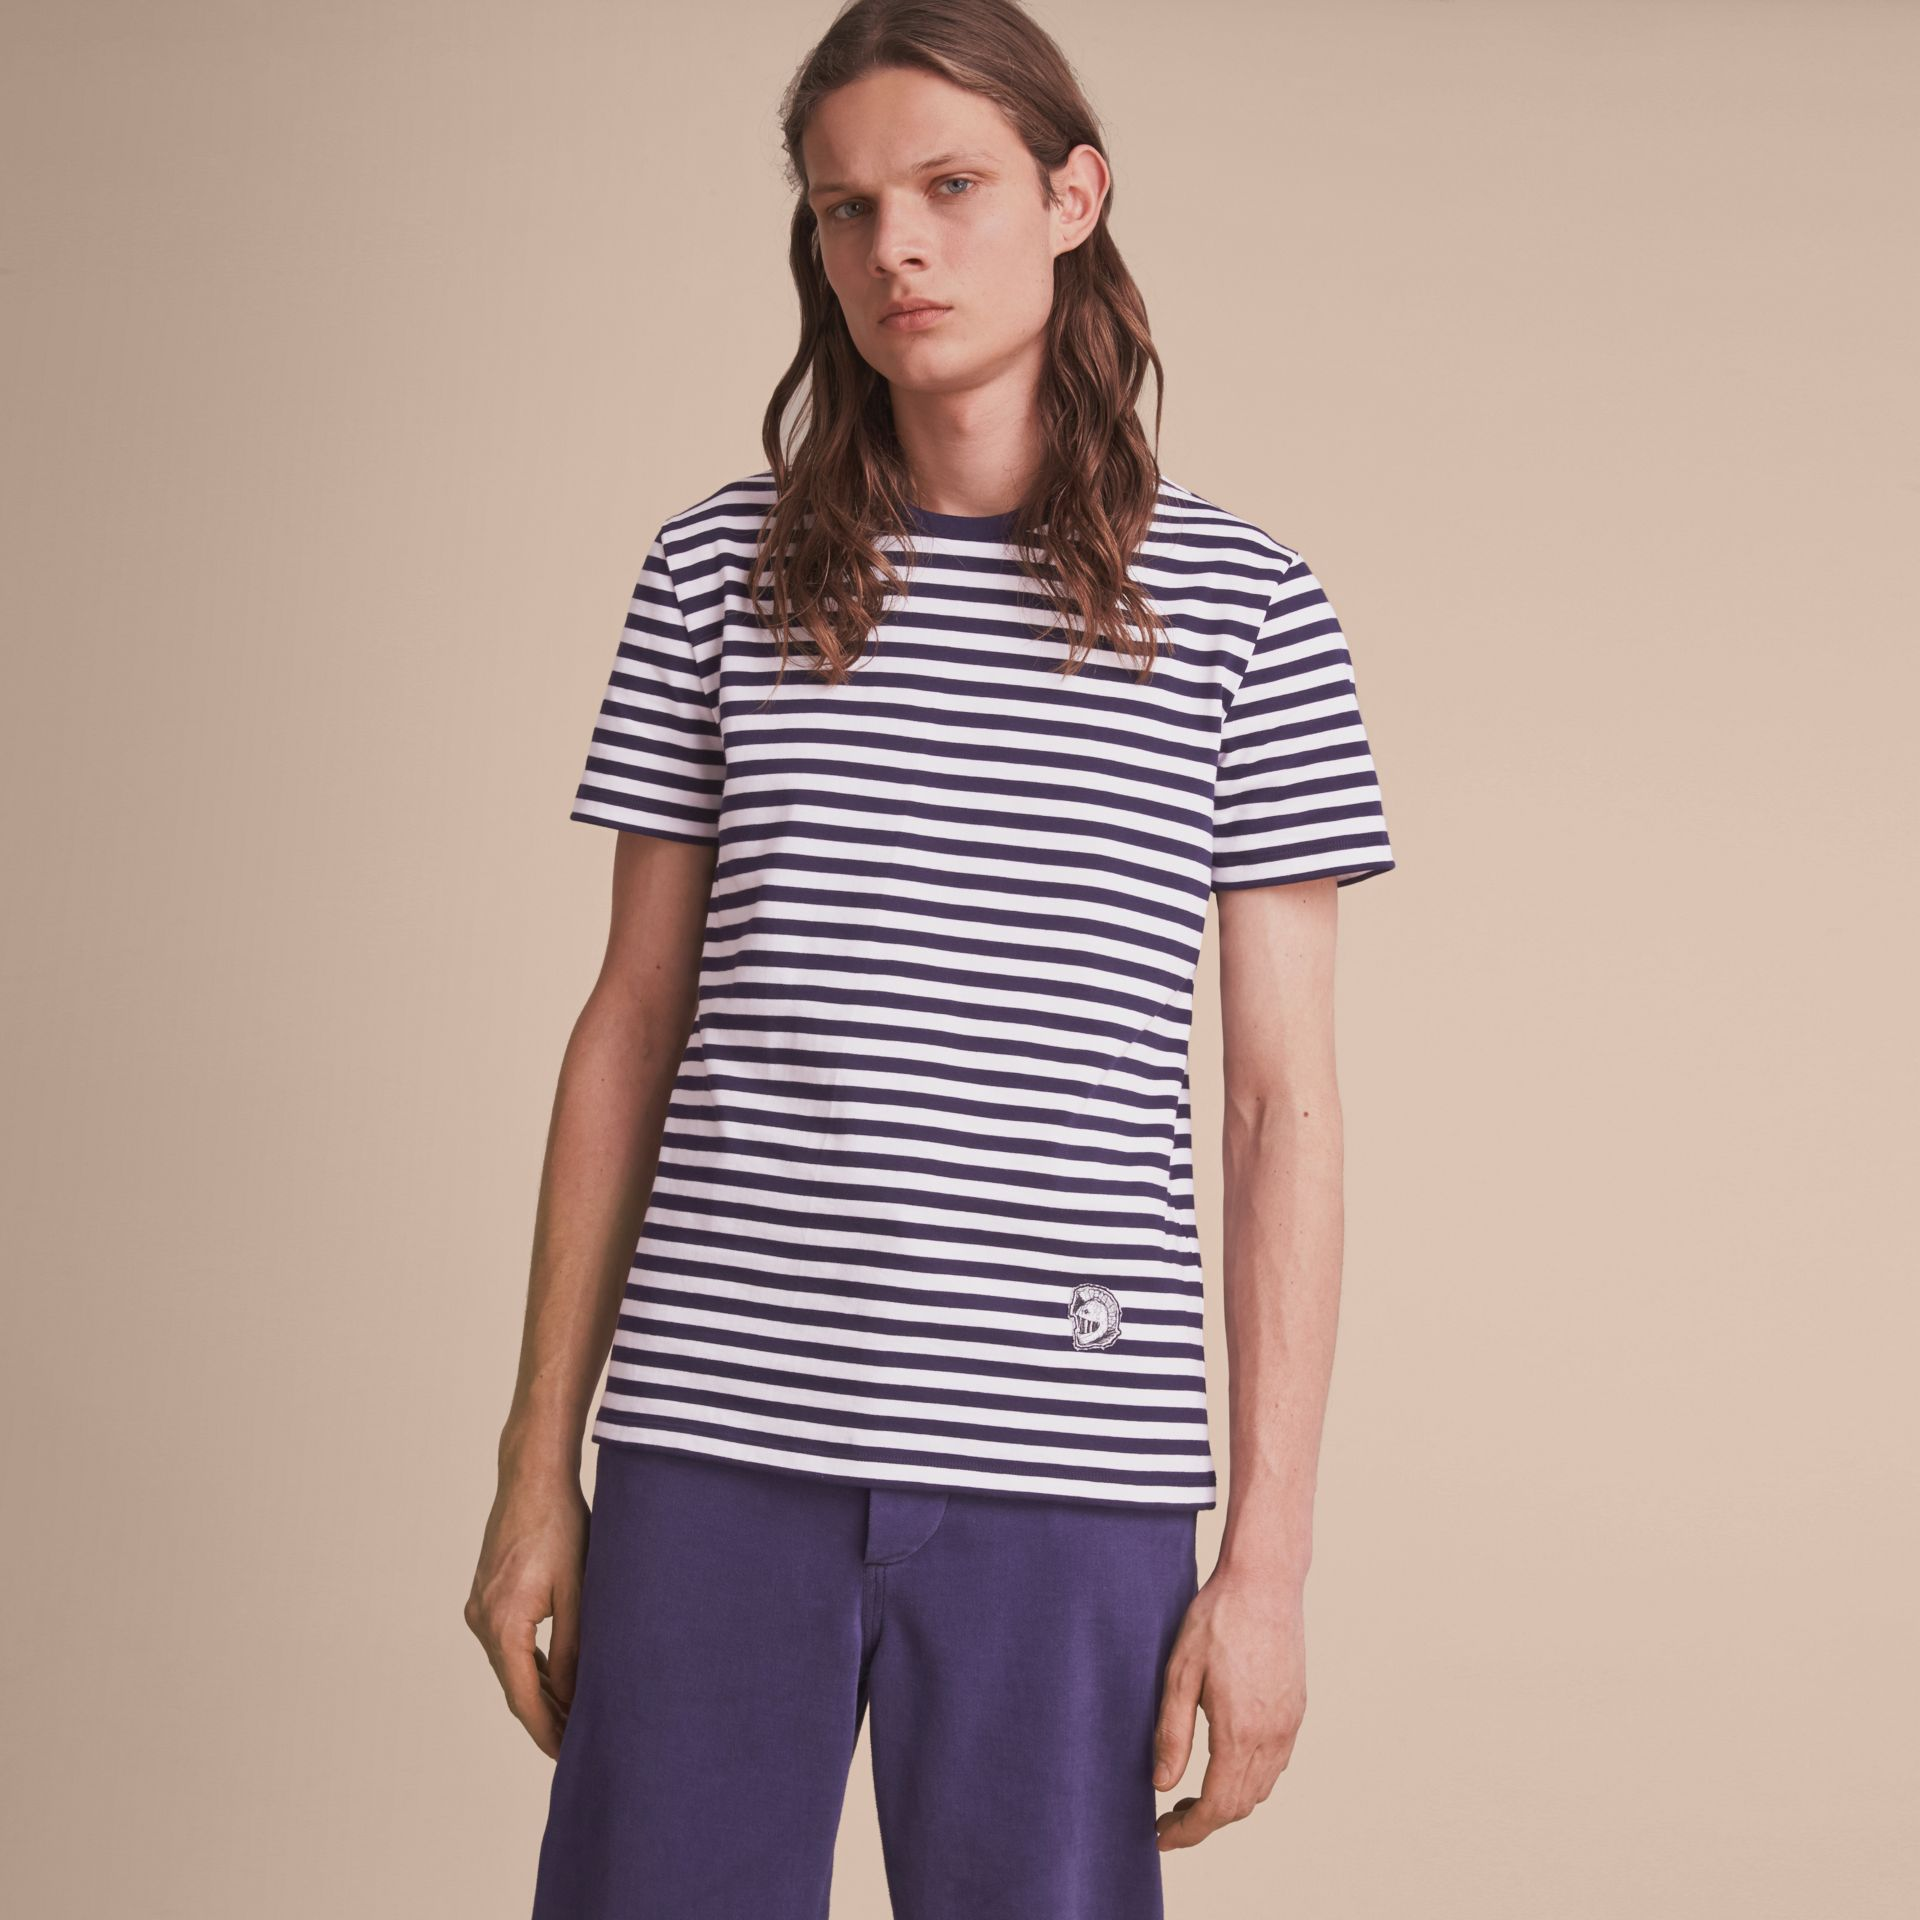 Breton Stripe Cotton T-shirt with Pallas Helmet Motif in Navy/white - Men | Burberry - gallery image 6